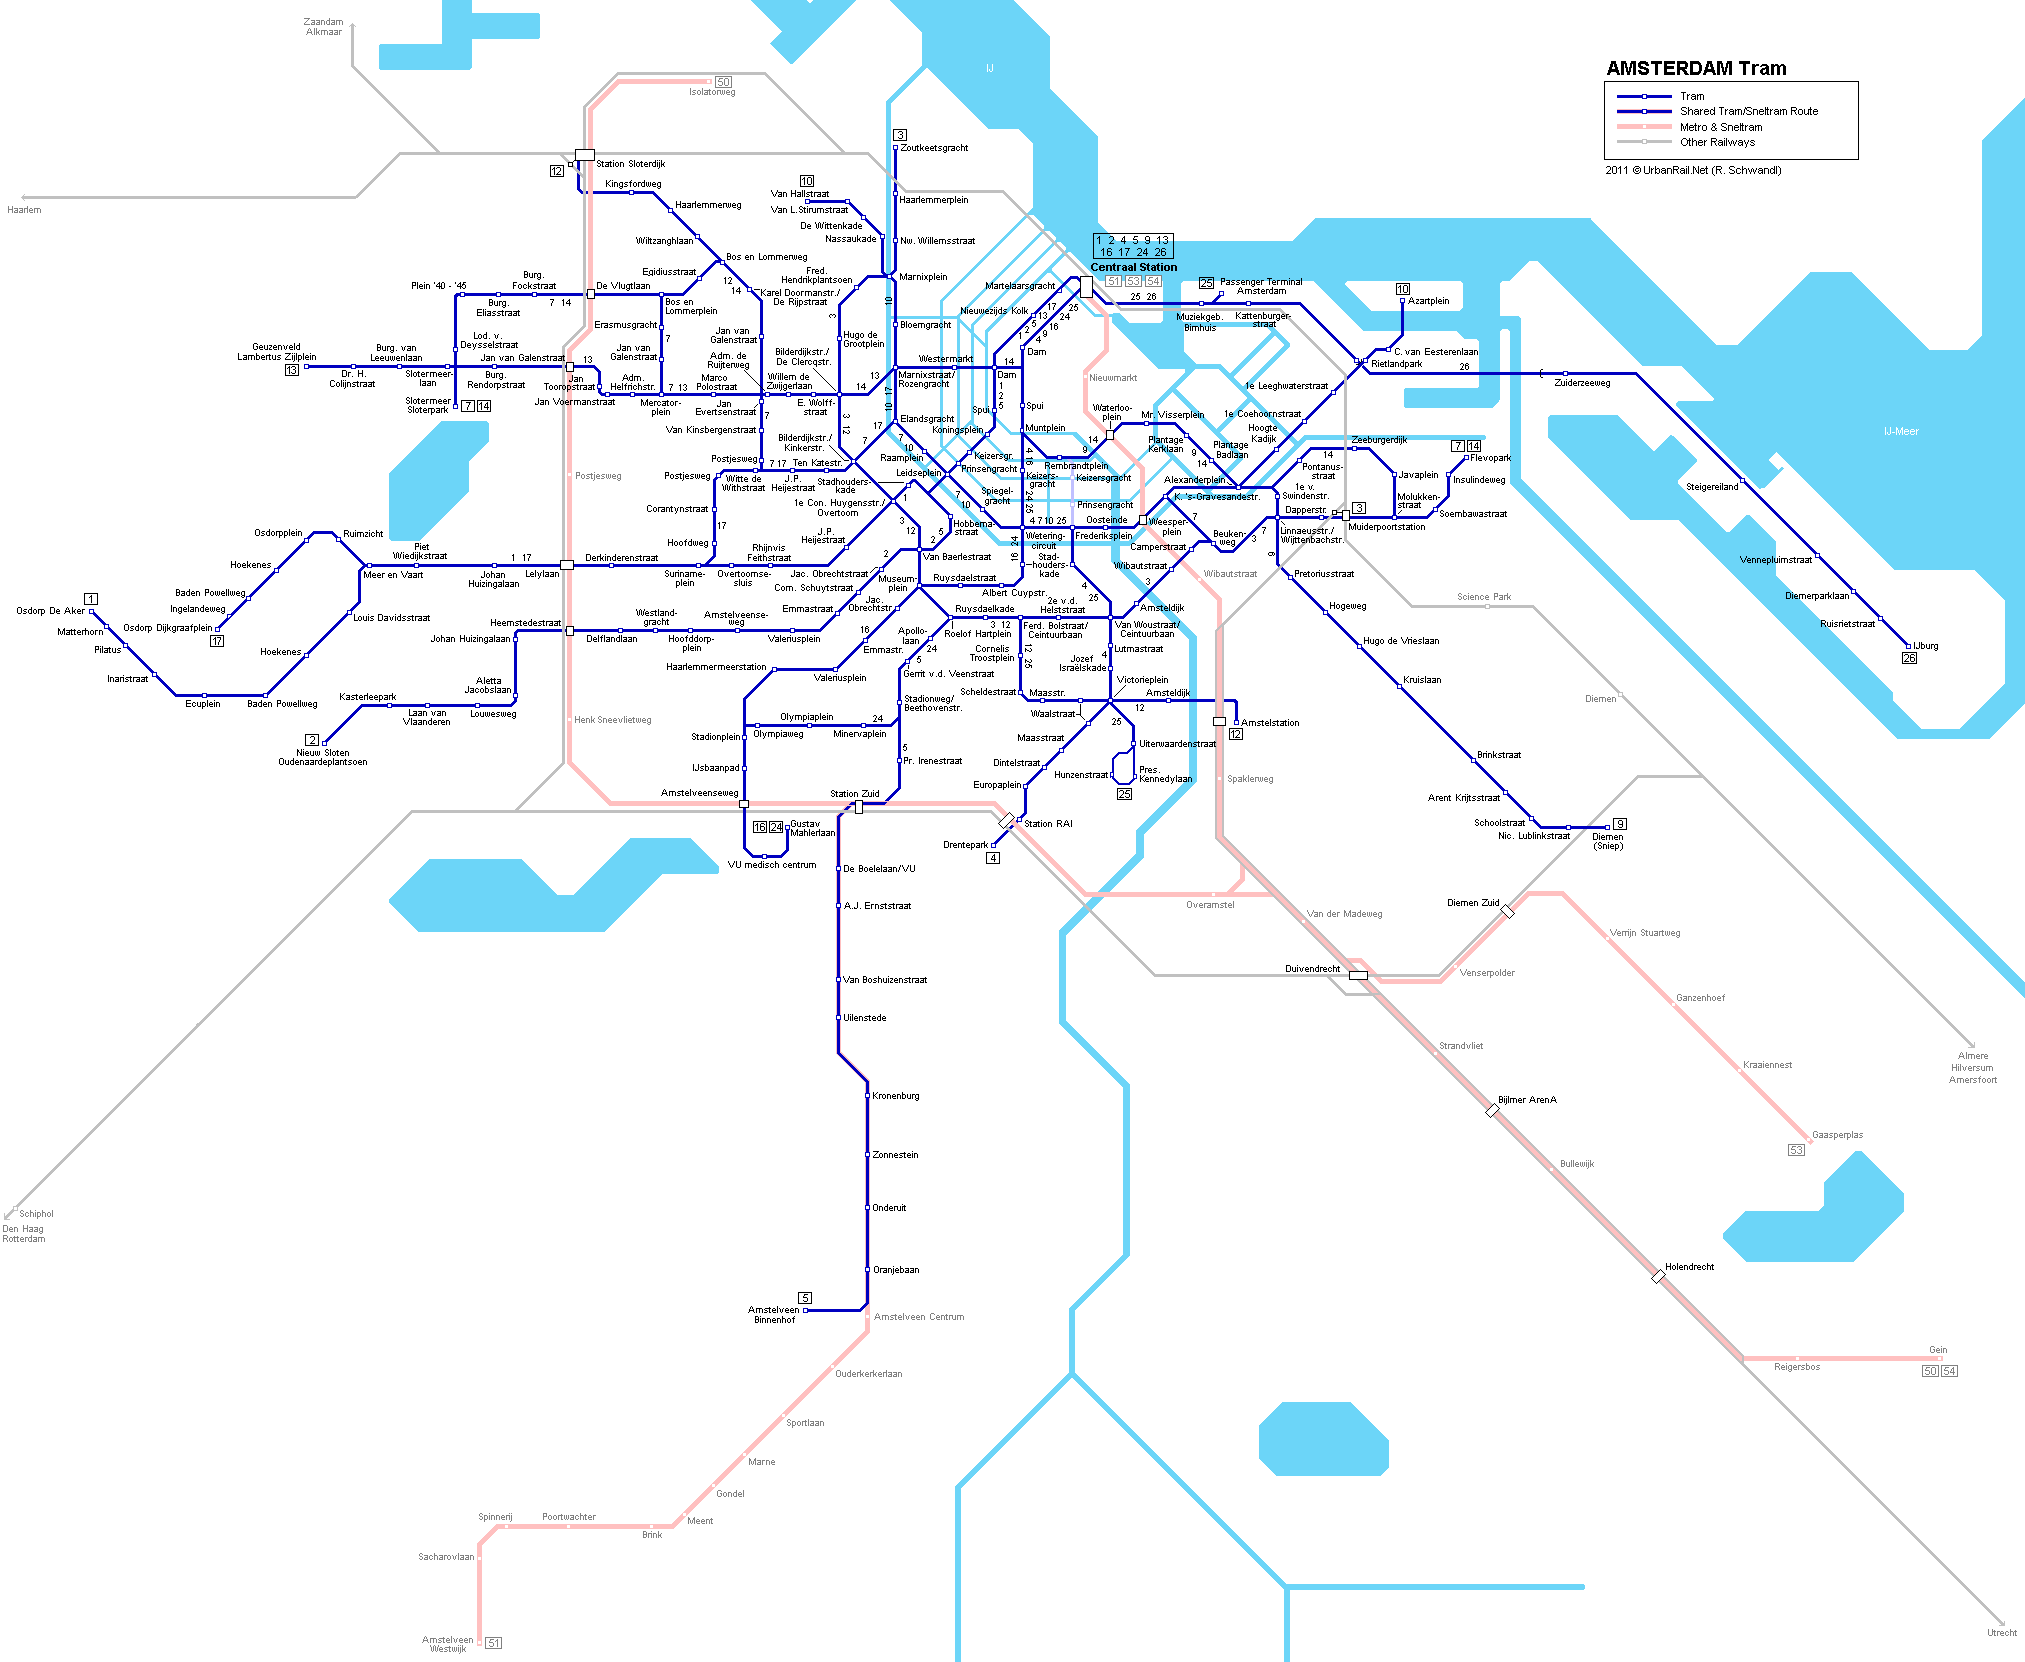 Tram Map of Amsterdam